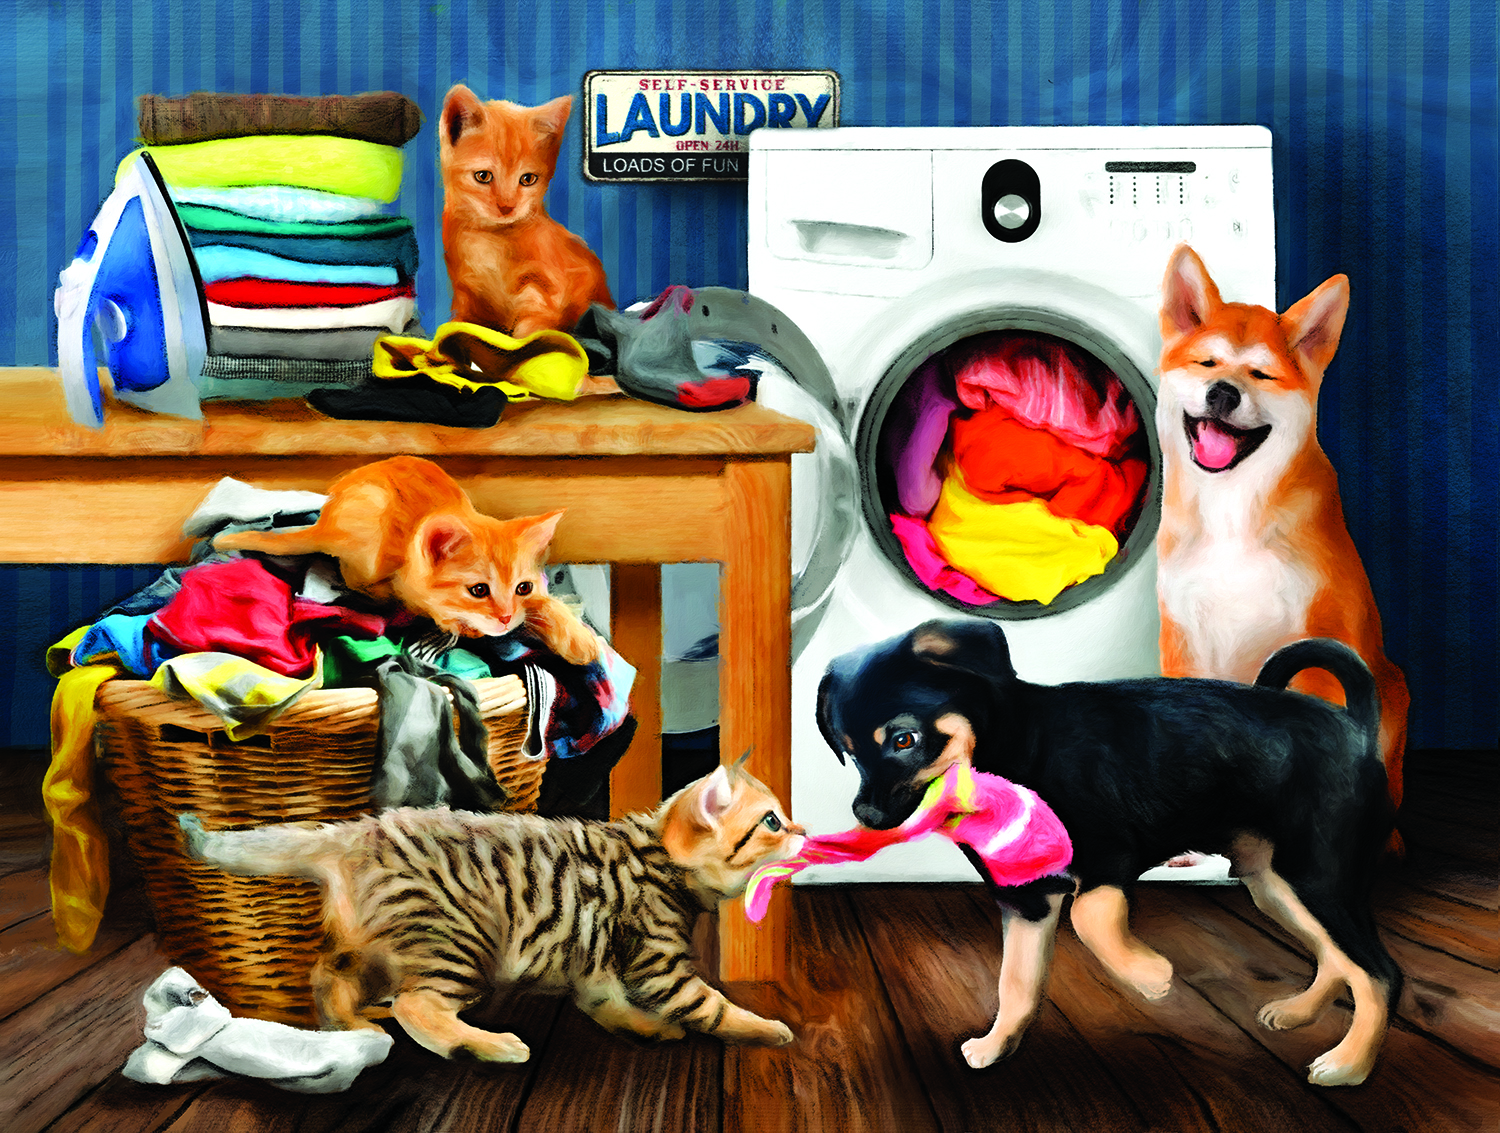 Laundry Room Laughs